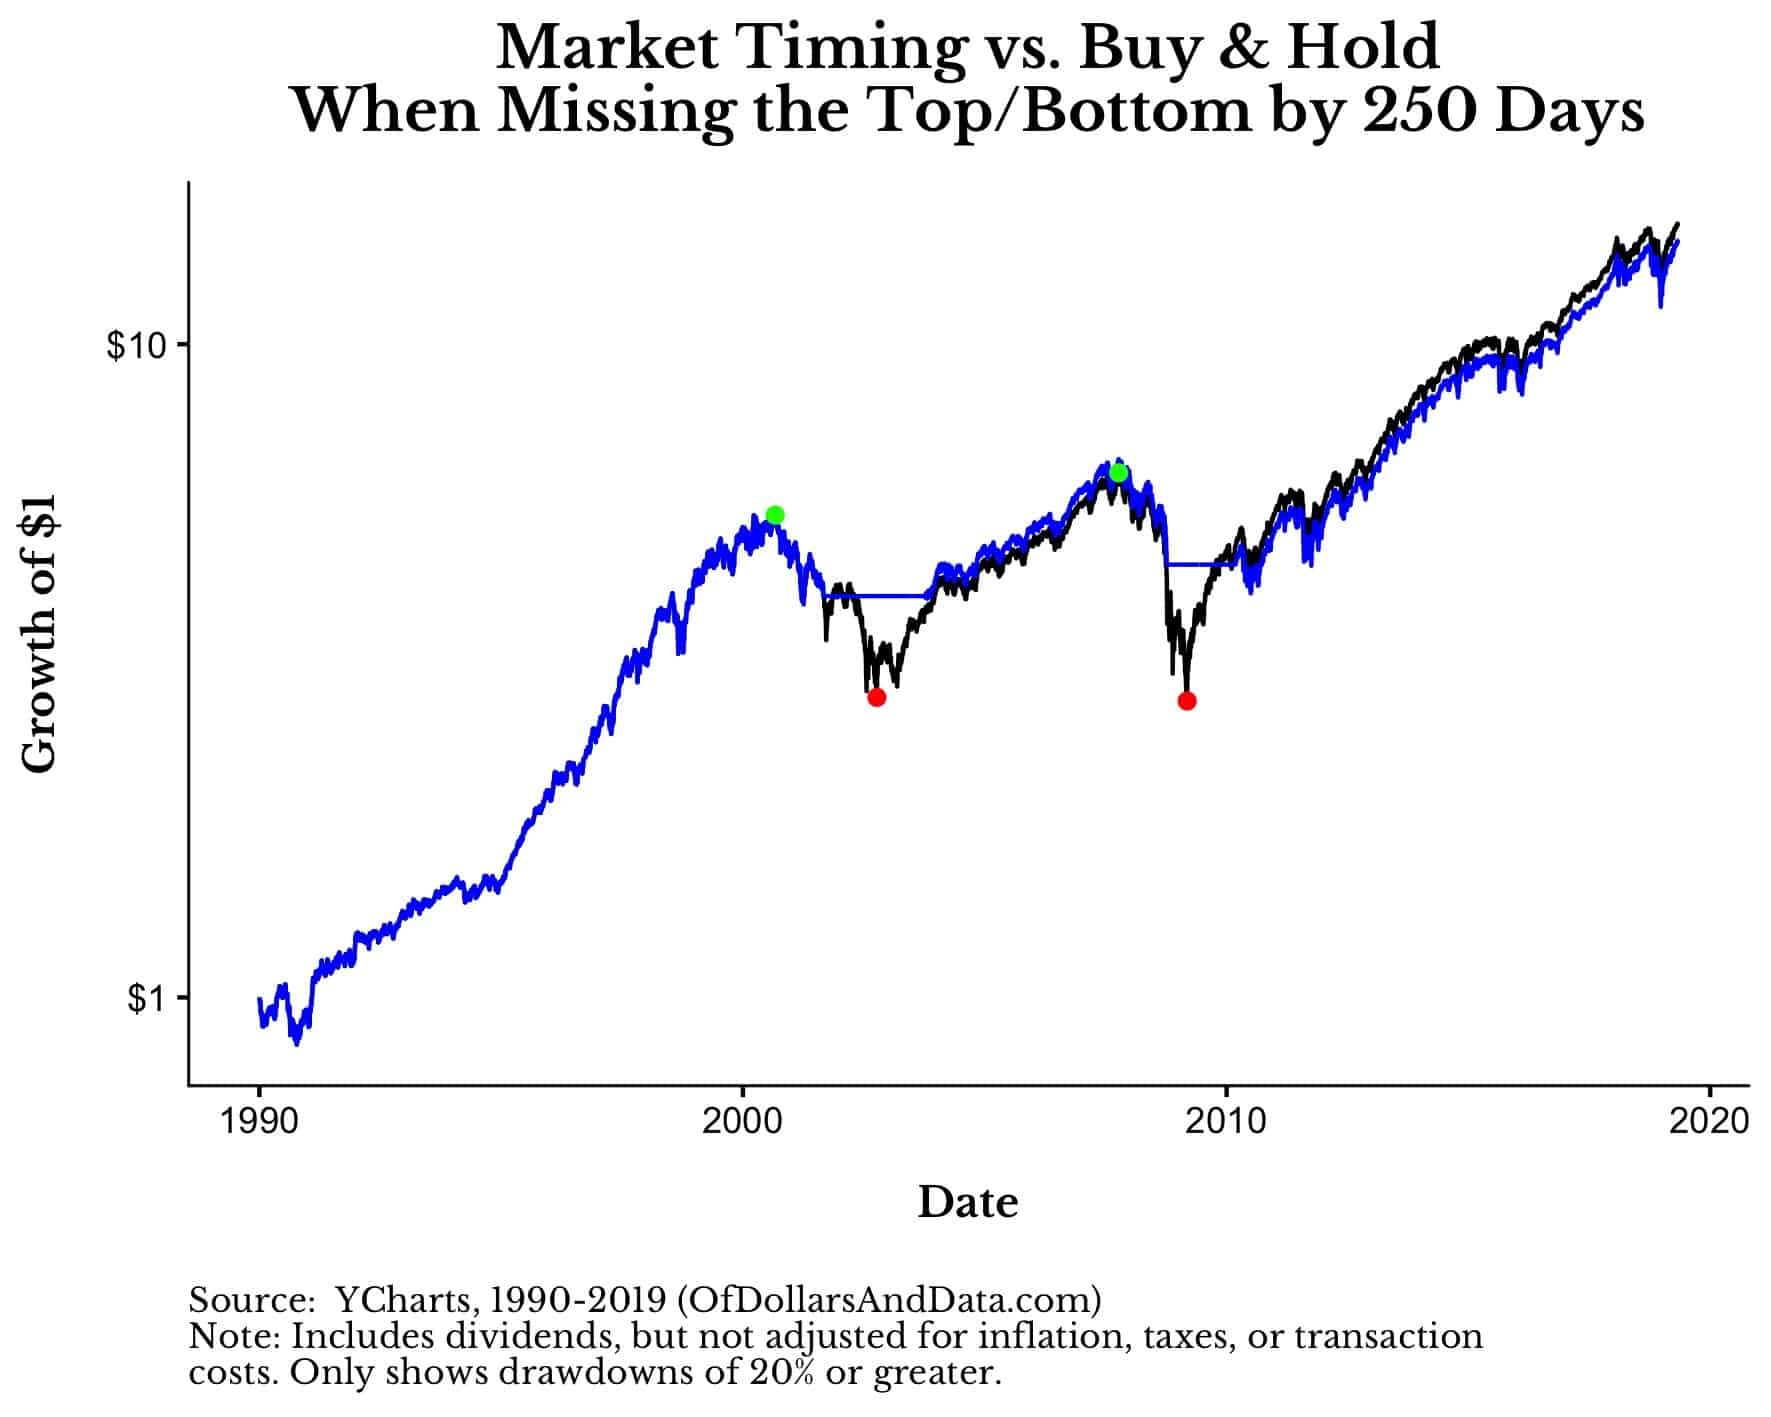 buy and hold vs market timing for the s&p 500 since 1990 with a 250 day timing lag